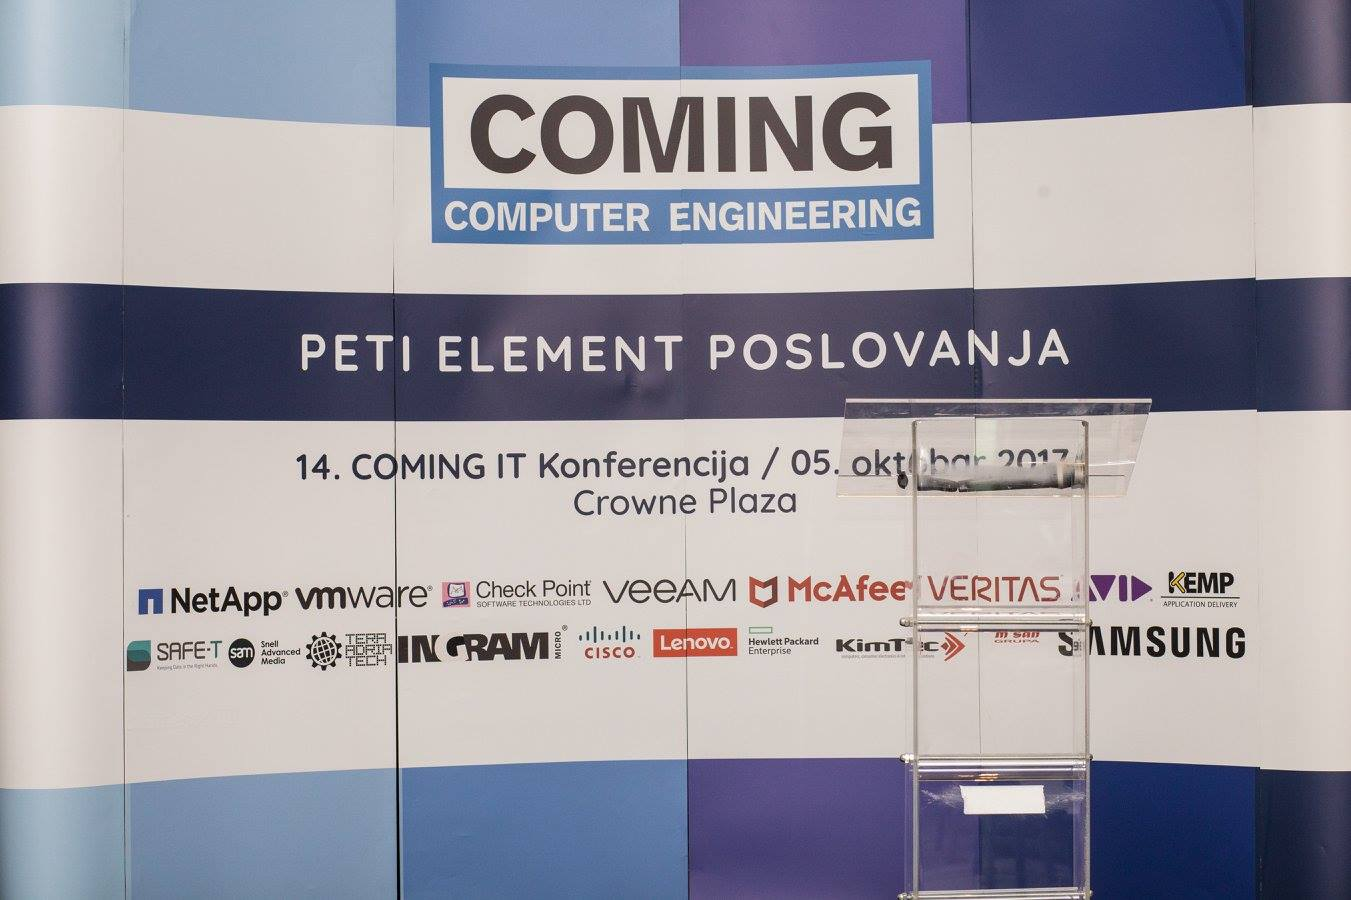 peti element poslovanja coming lobohouse